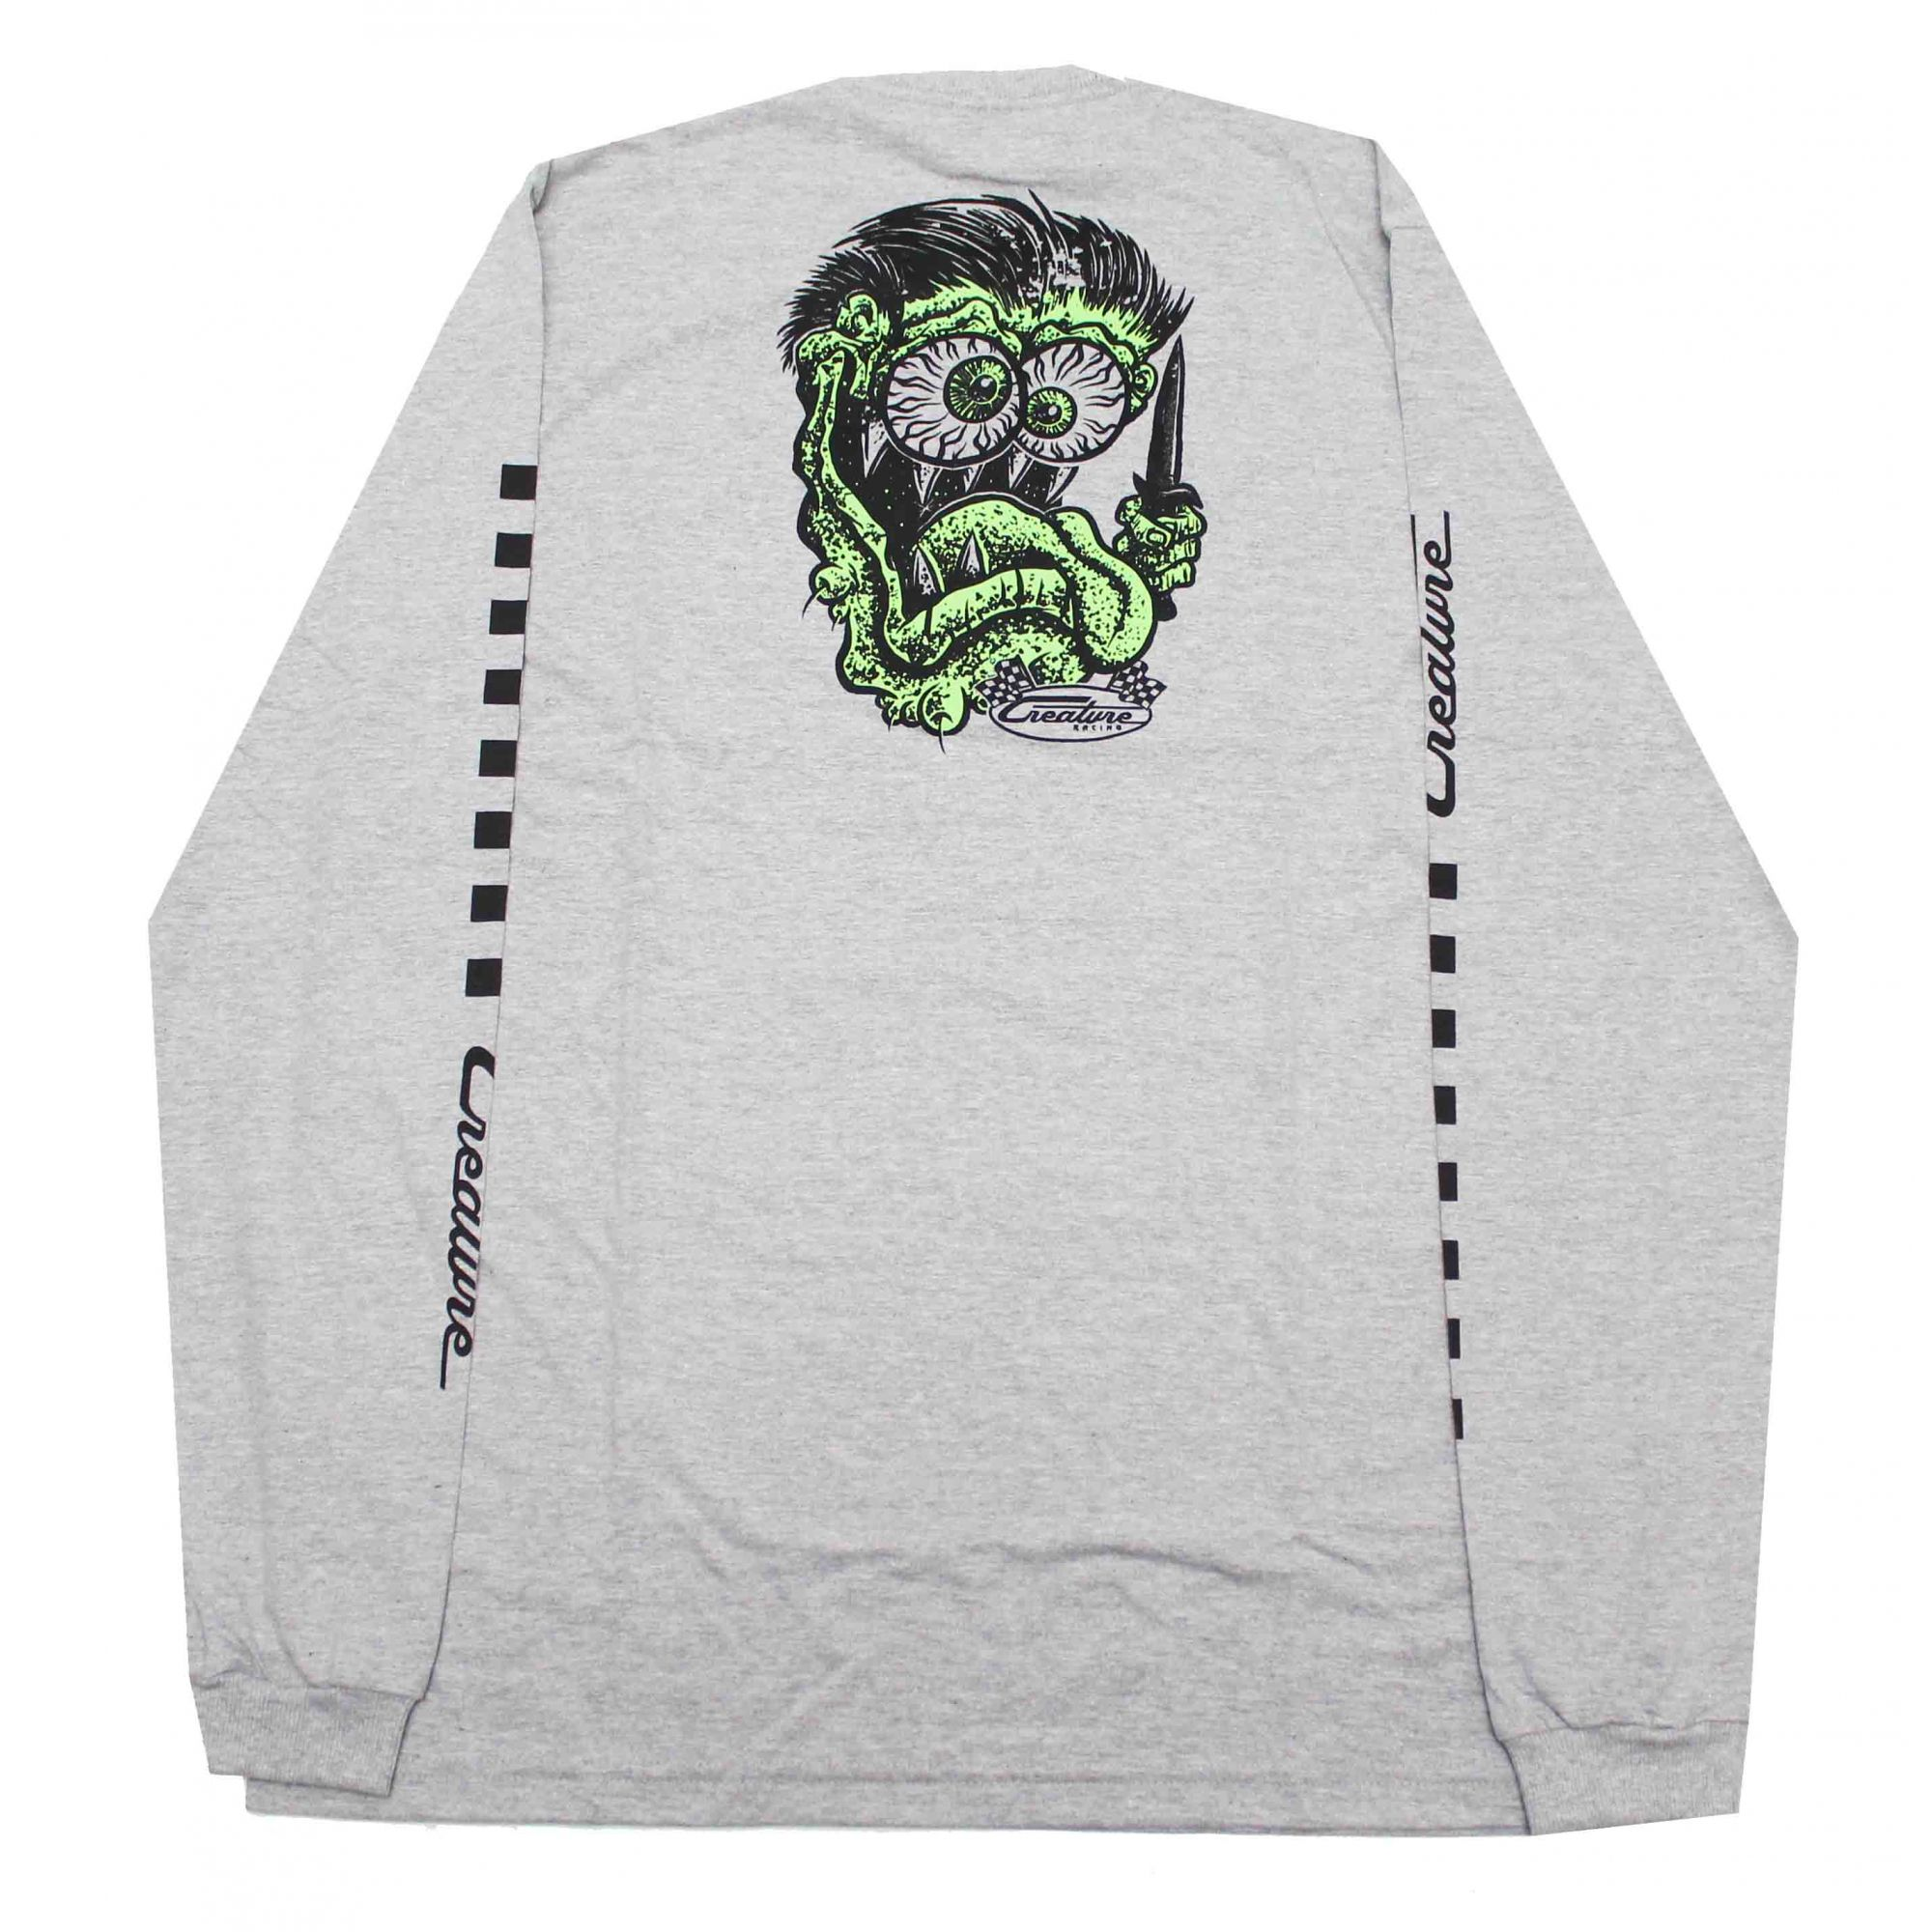 Camiseta Manga Longa Creature Grease Monkey Grey